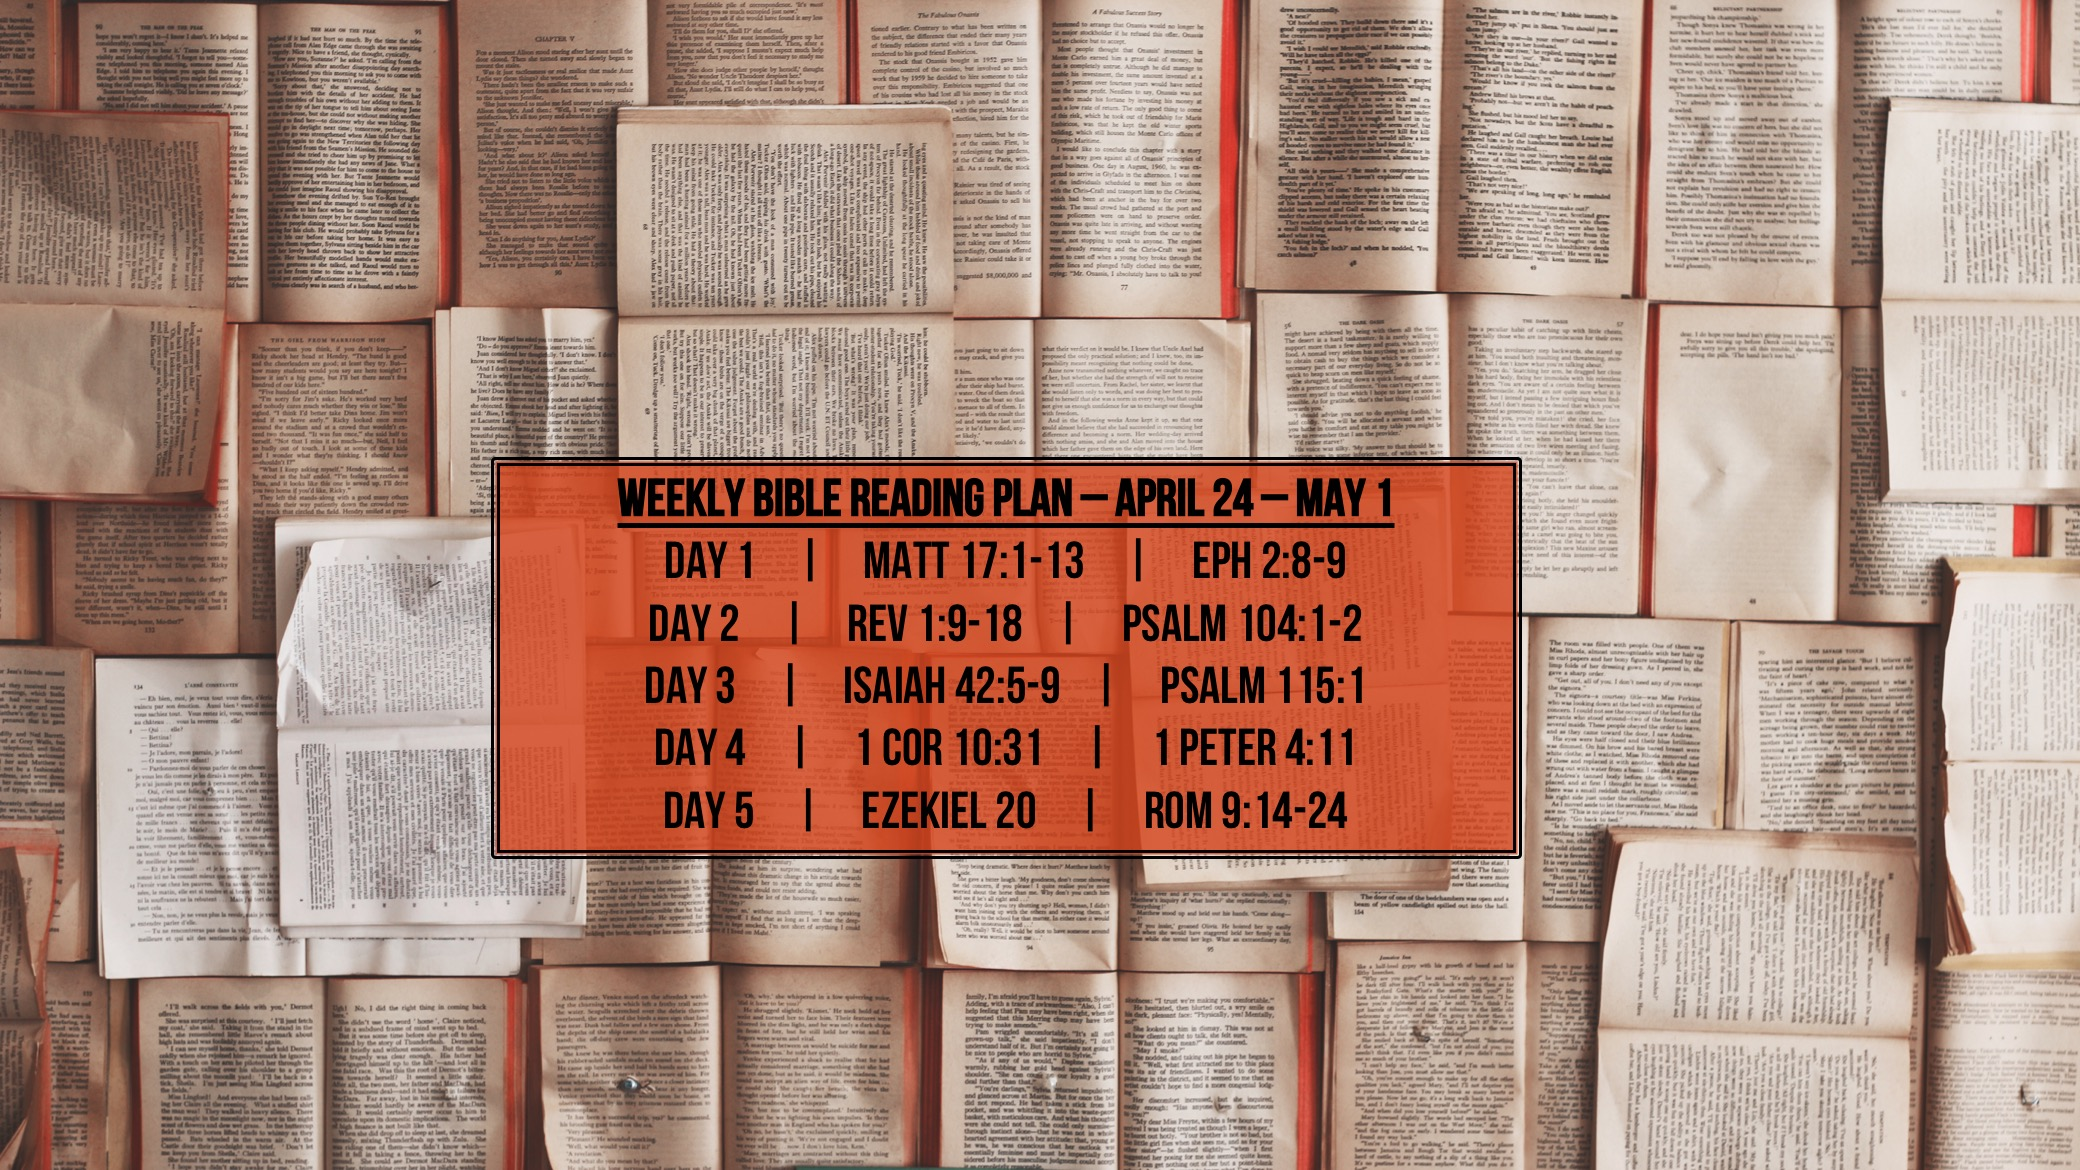 Matt 17.1-13 - Reading Plan -  April 24 - May 1.2016 - Soli Deo Gloria